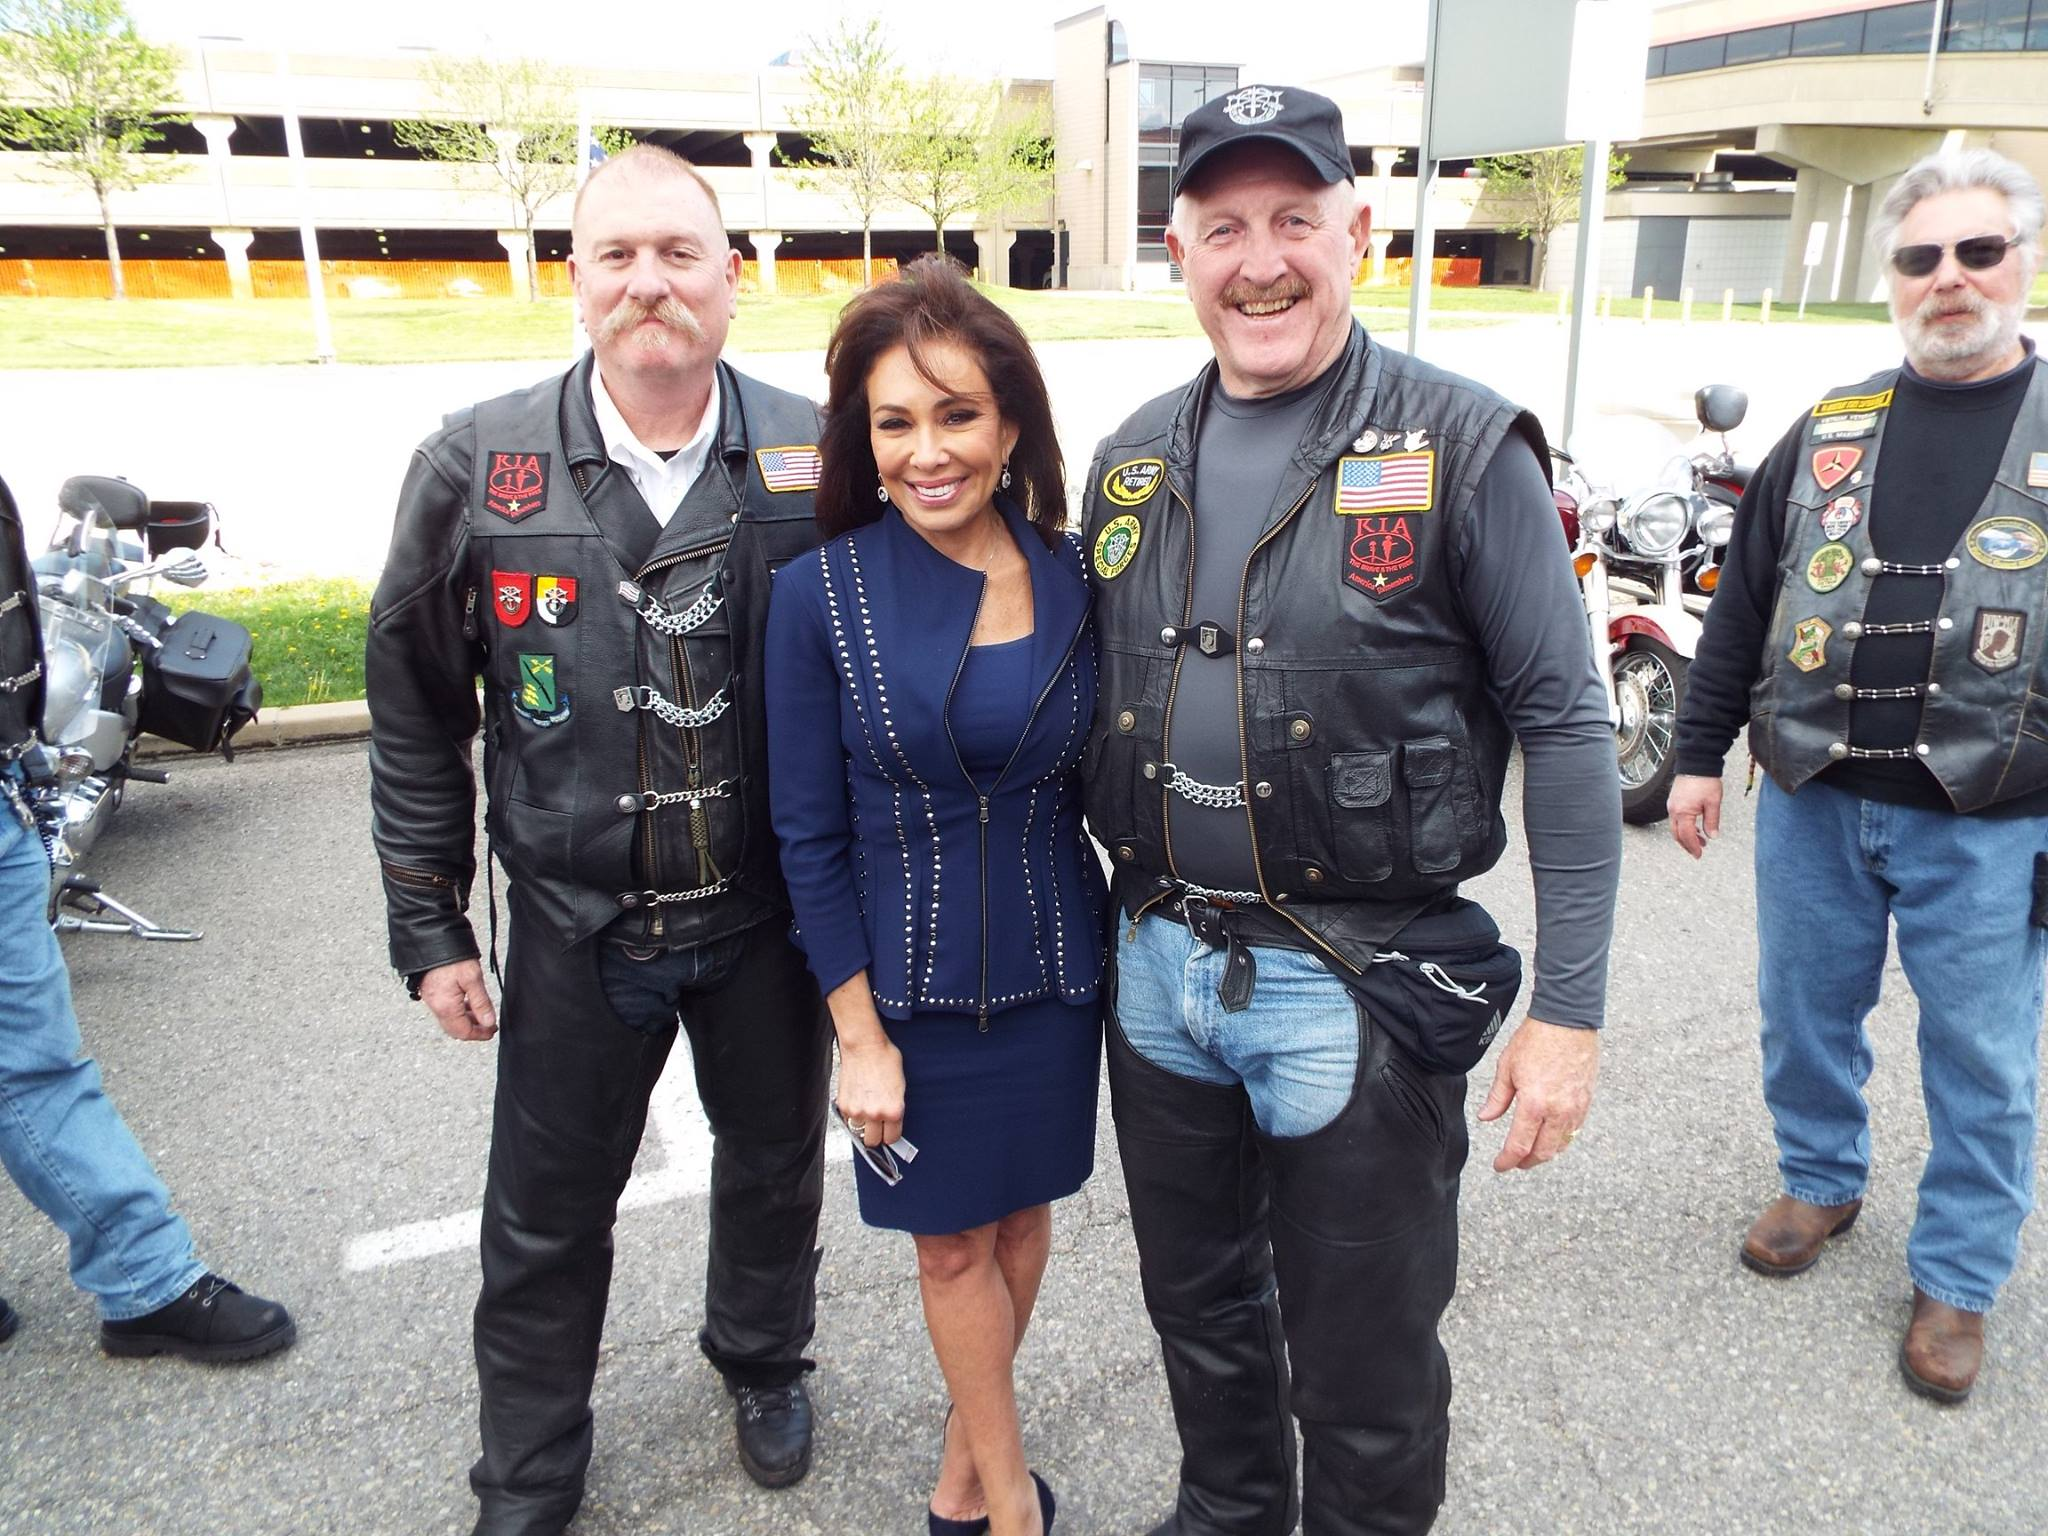 Mike Adams and Ron Johnson with Judge Jeanine